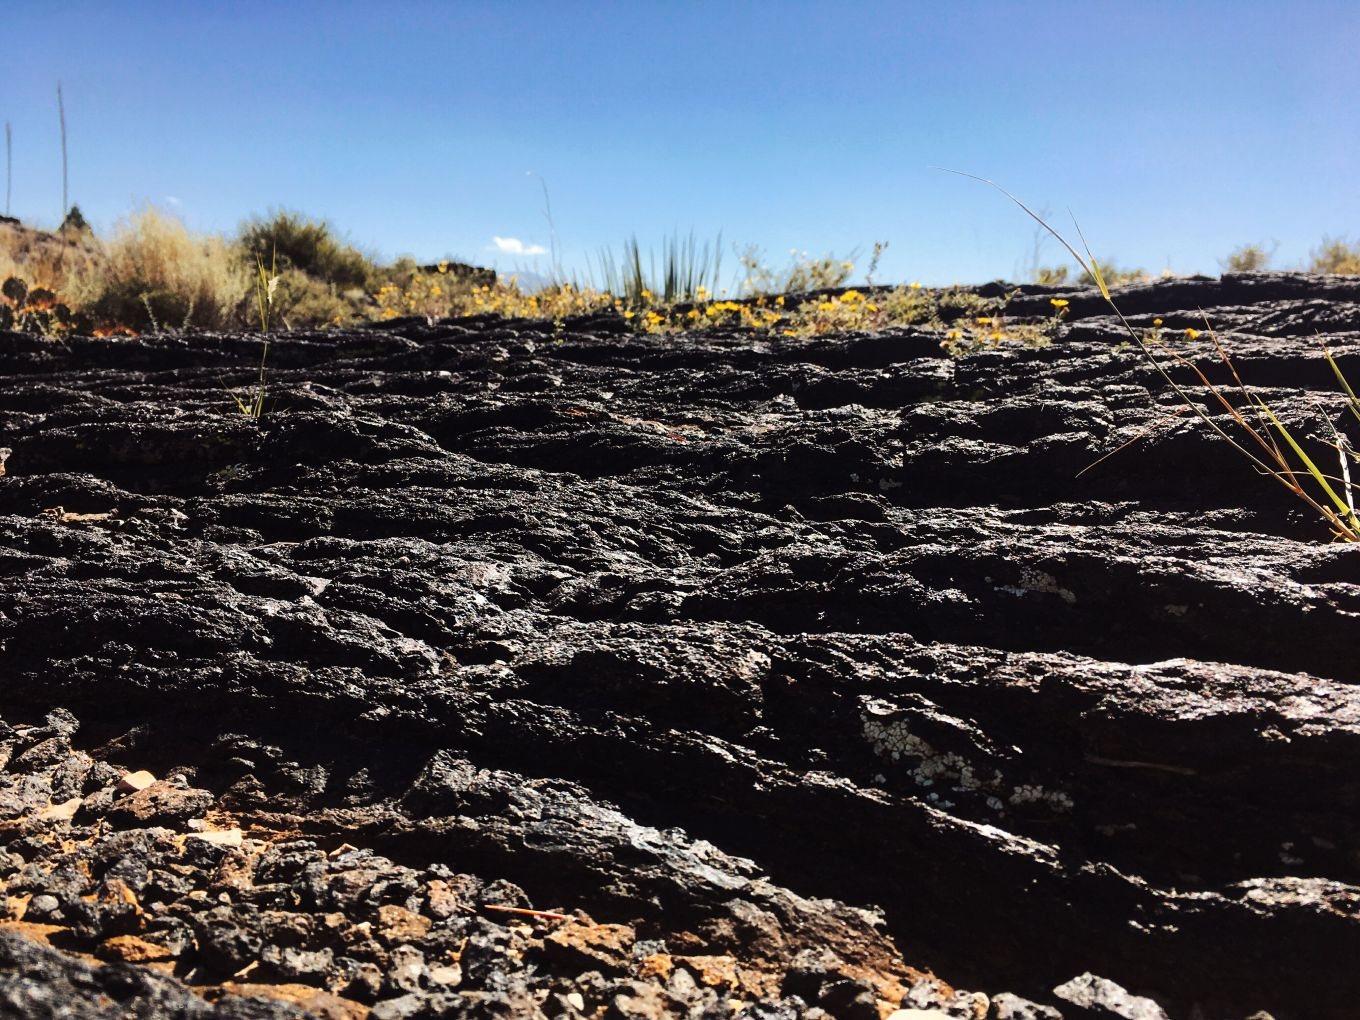 Lava layers at Valley of Fires, New Mexico